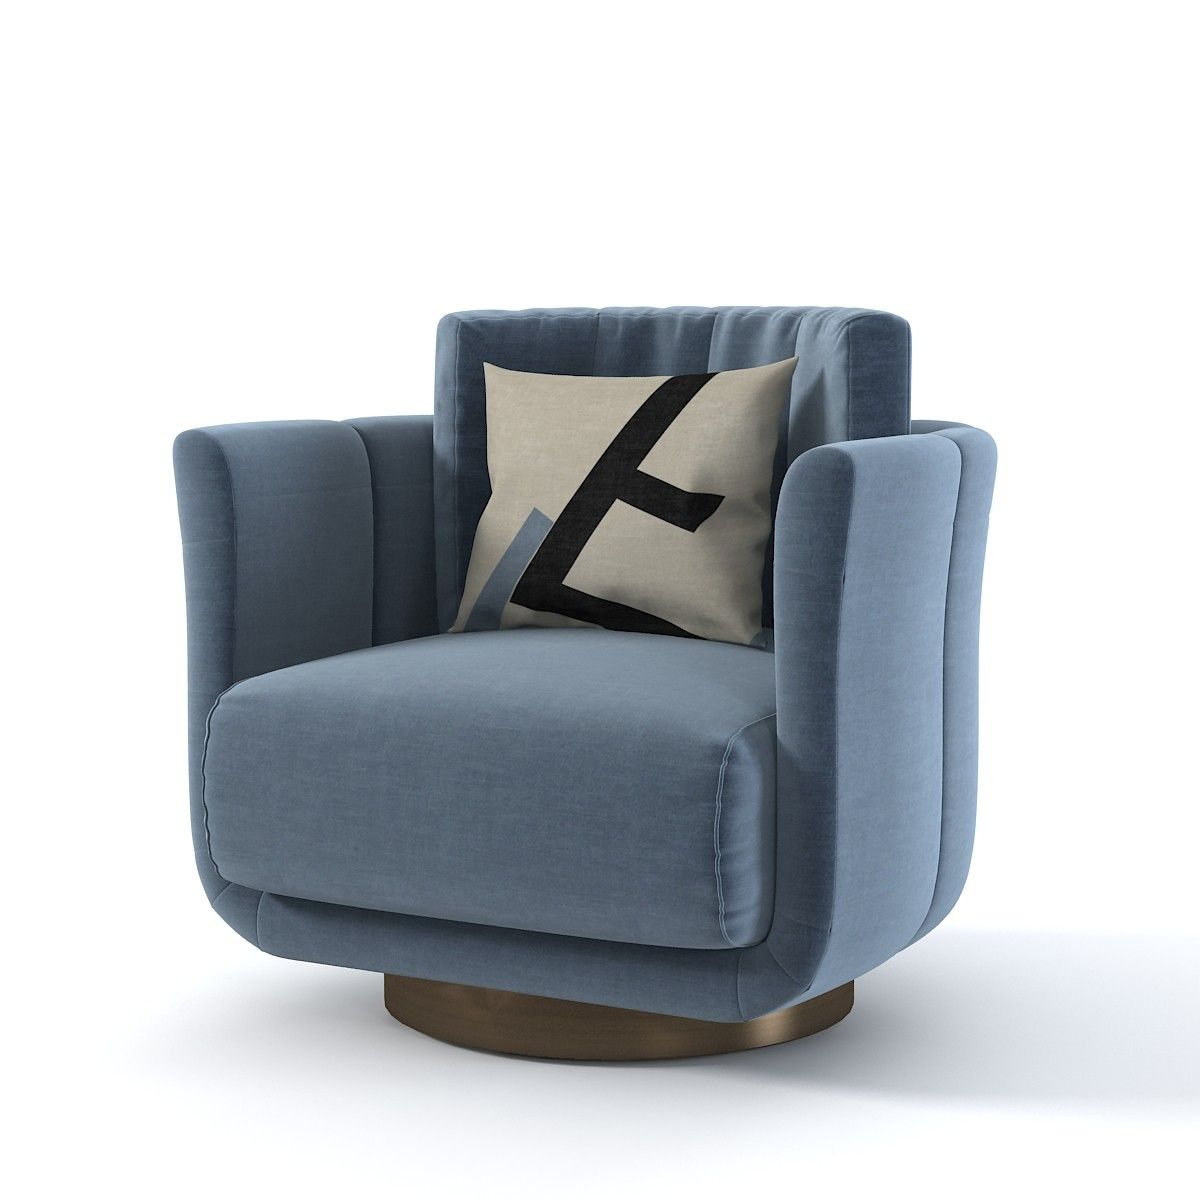 Armchair Near Me Fendi Casa Artu 3d Model Armchair Sofa Furniture